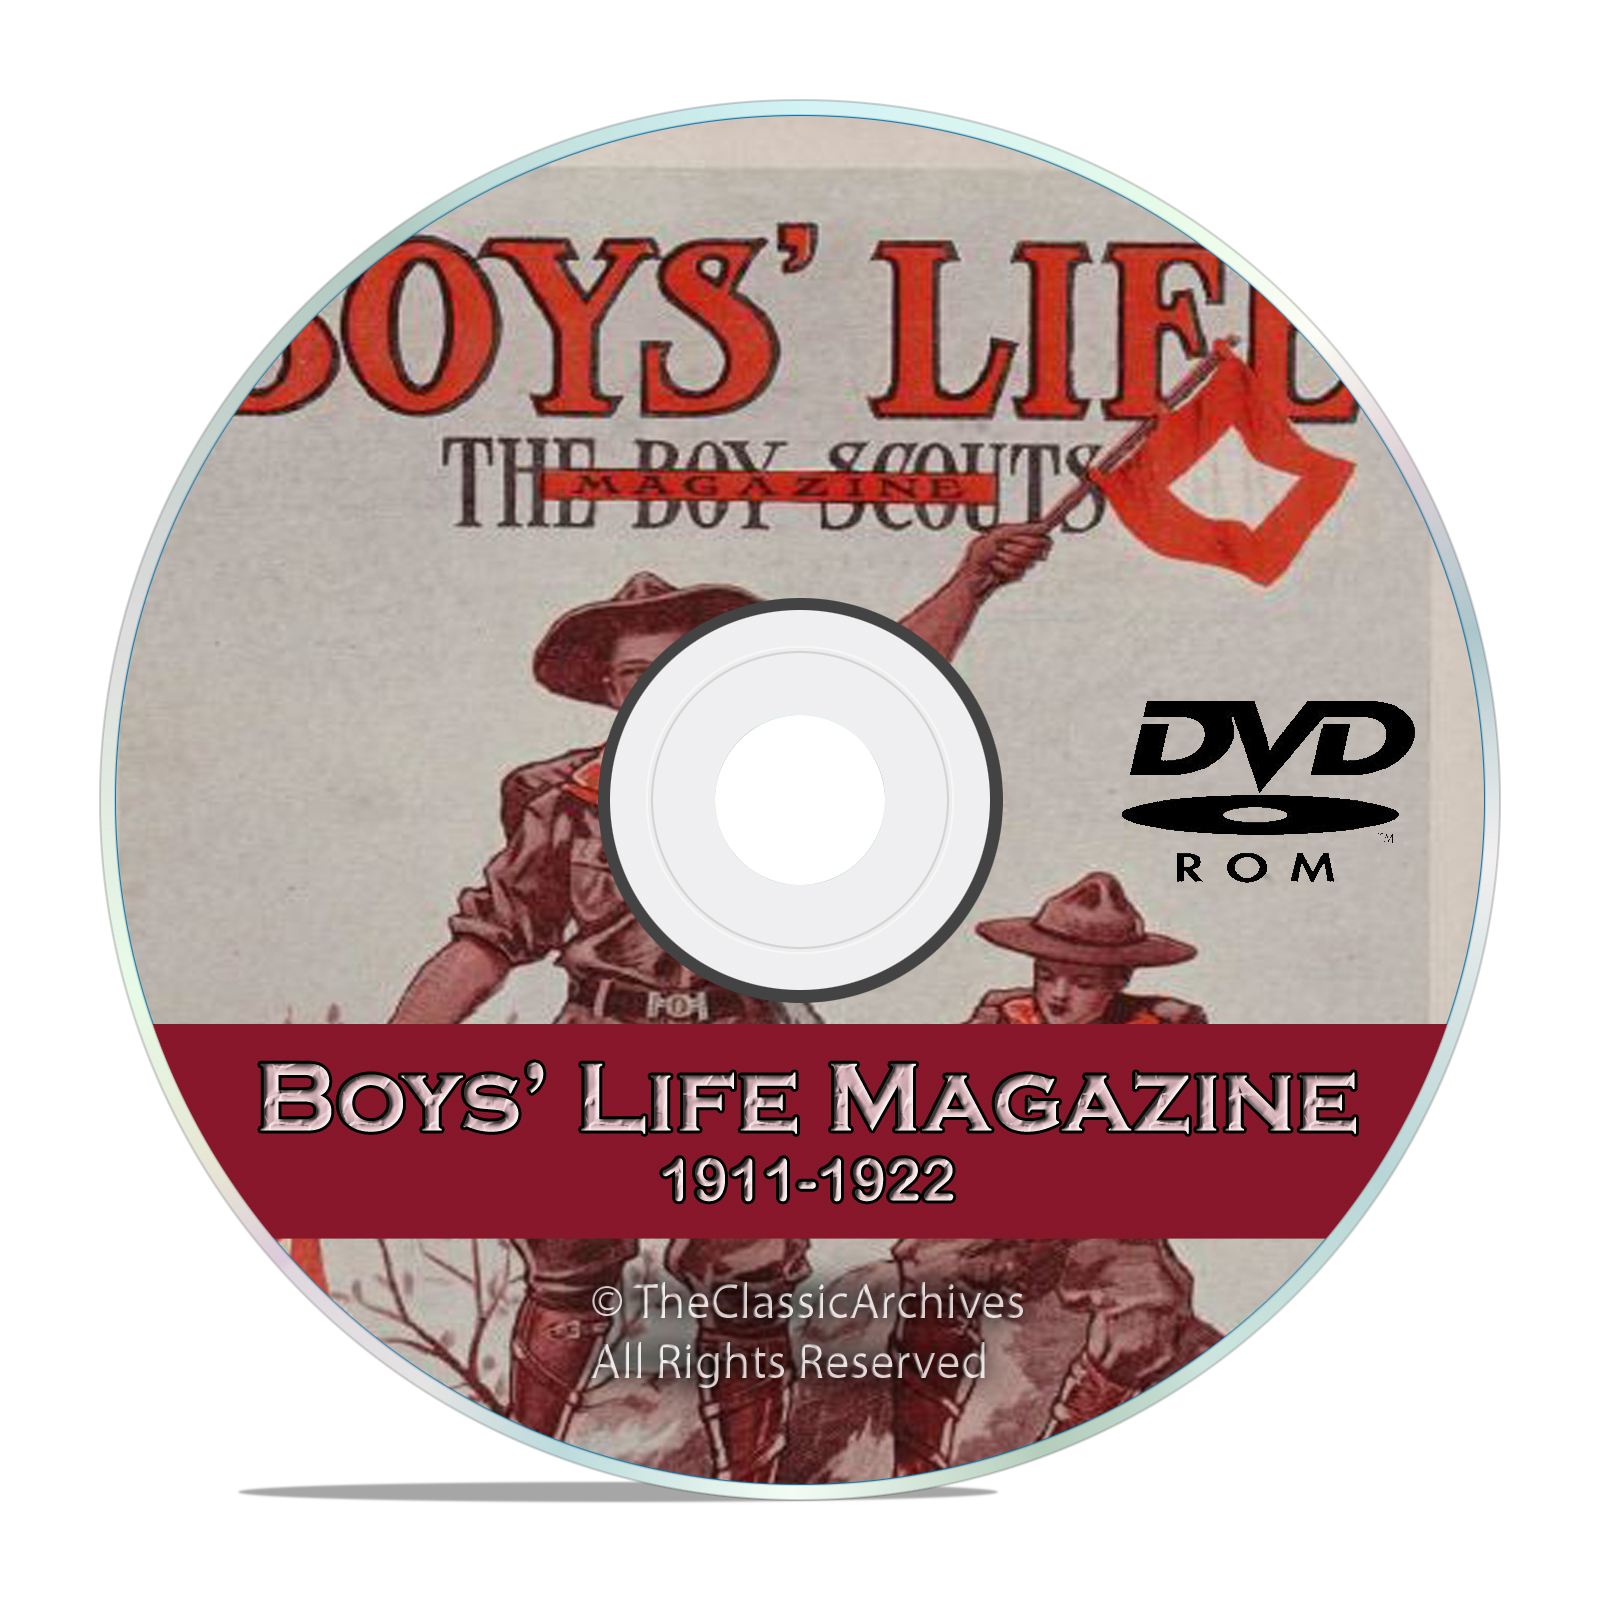 Vintage Boys Life Magazine, (Boy Scouts) 1911-1922, 140 old issues, DVD